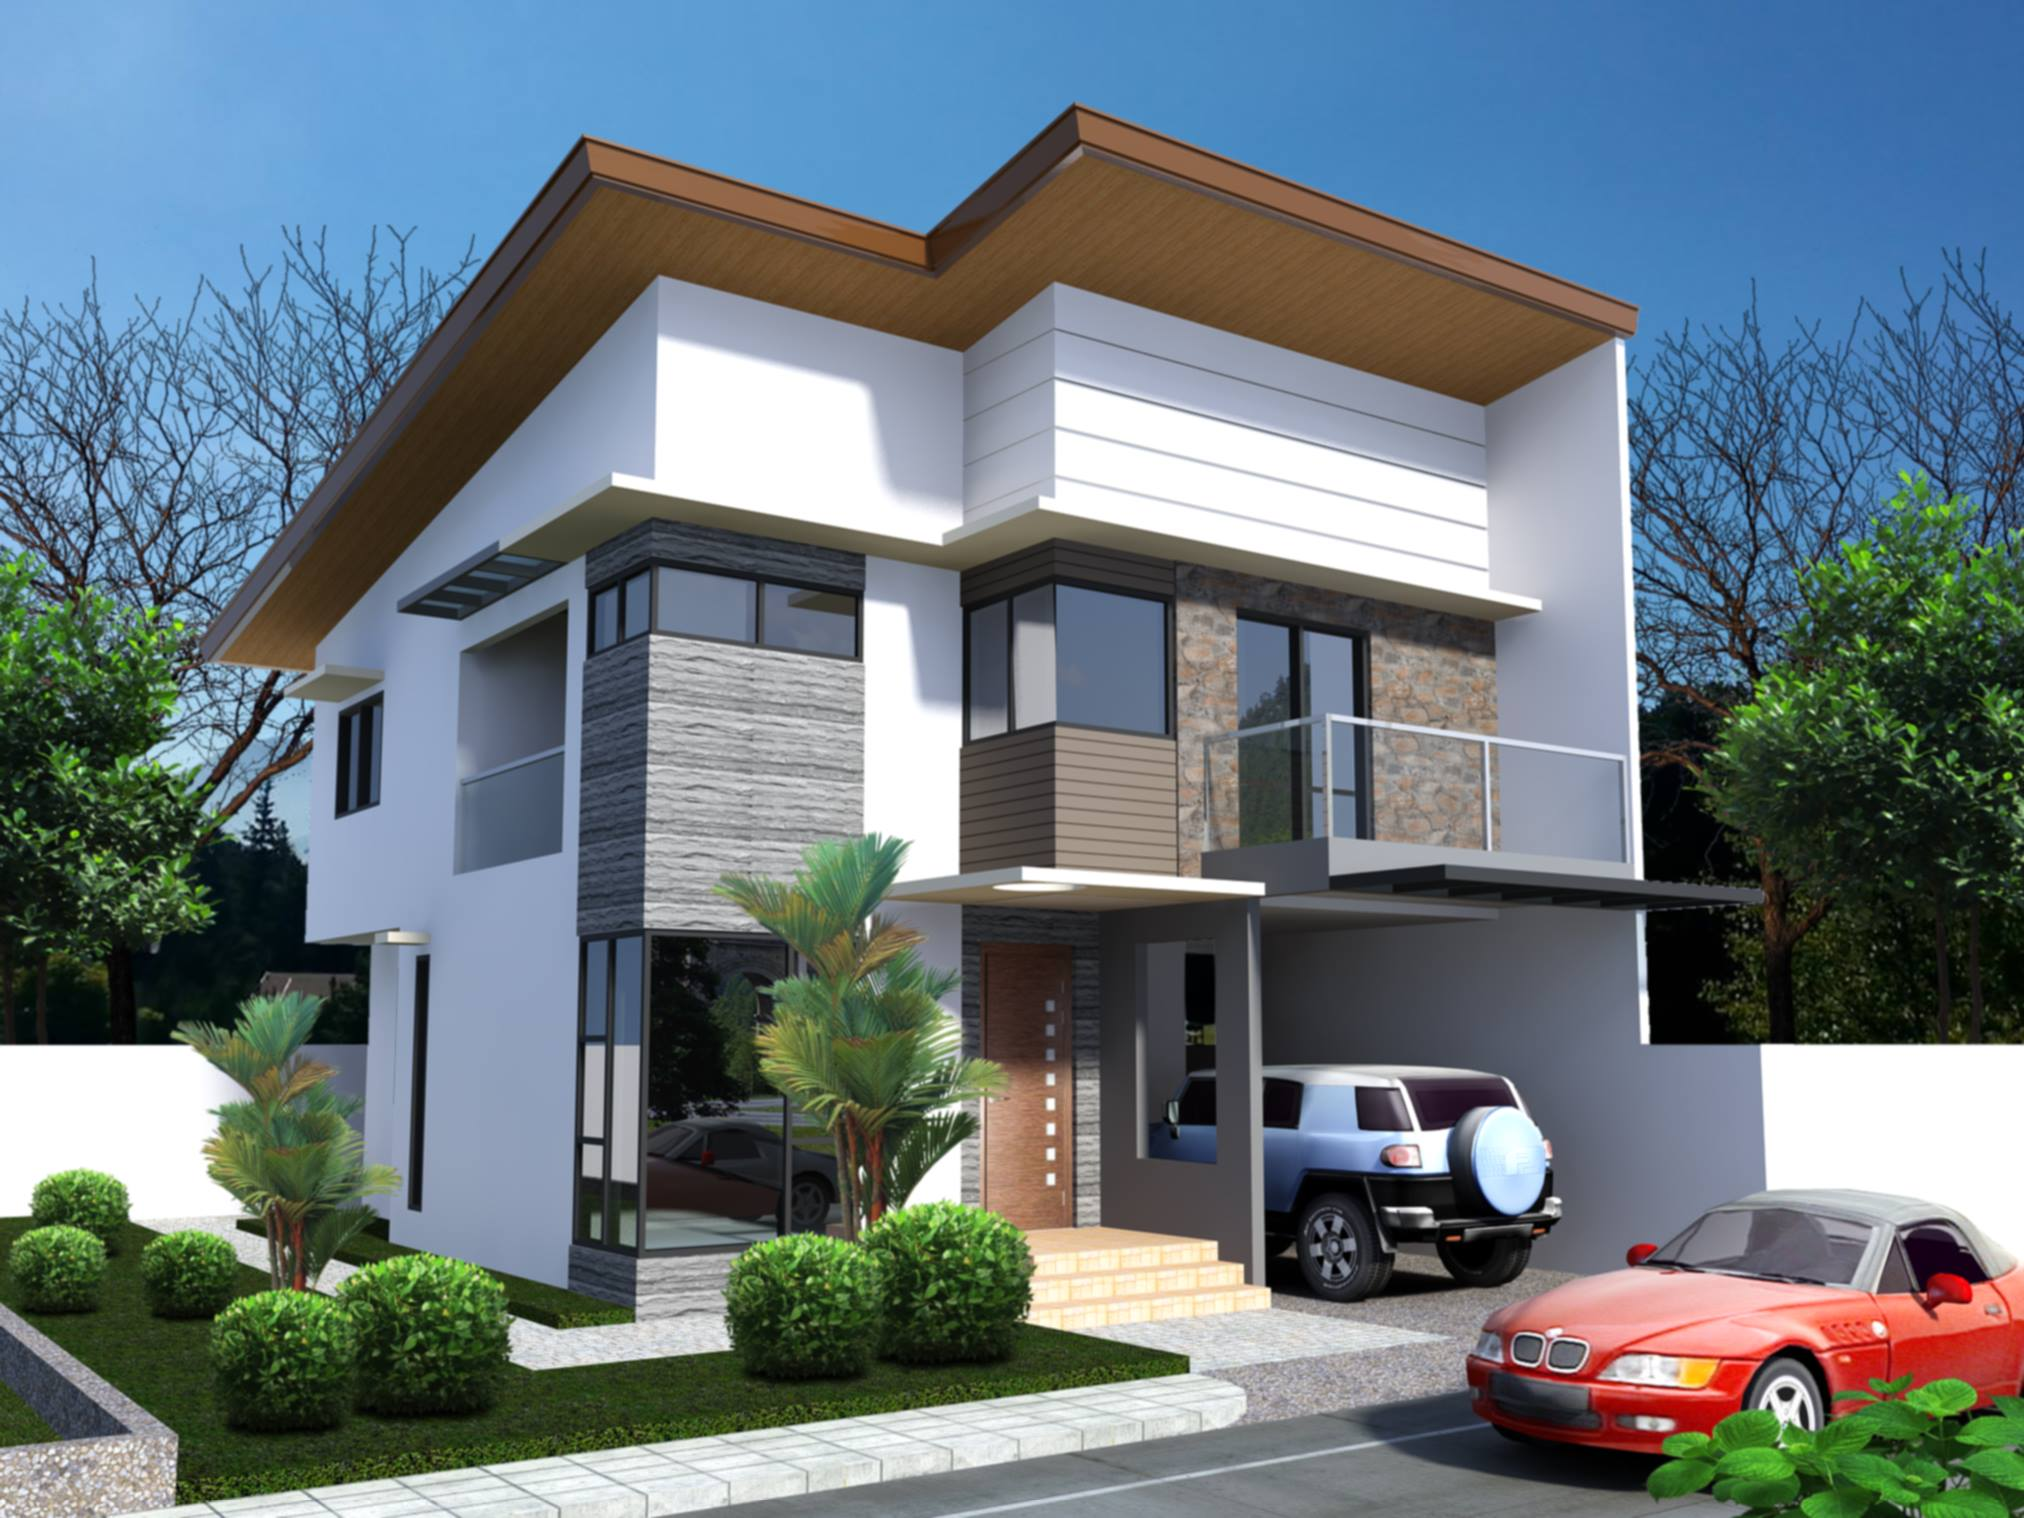 Pagibig Housing Loan Application Requirements Processing And Procedures